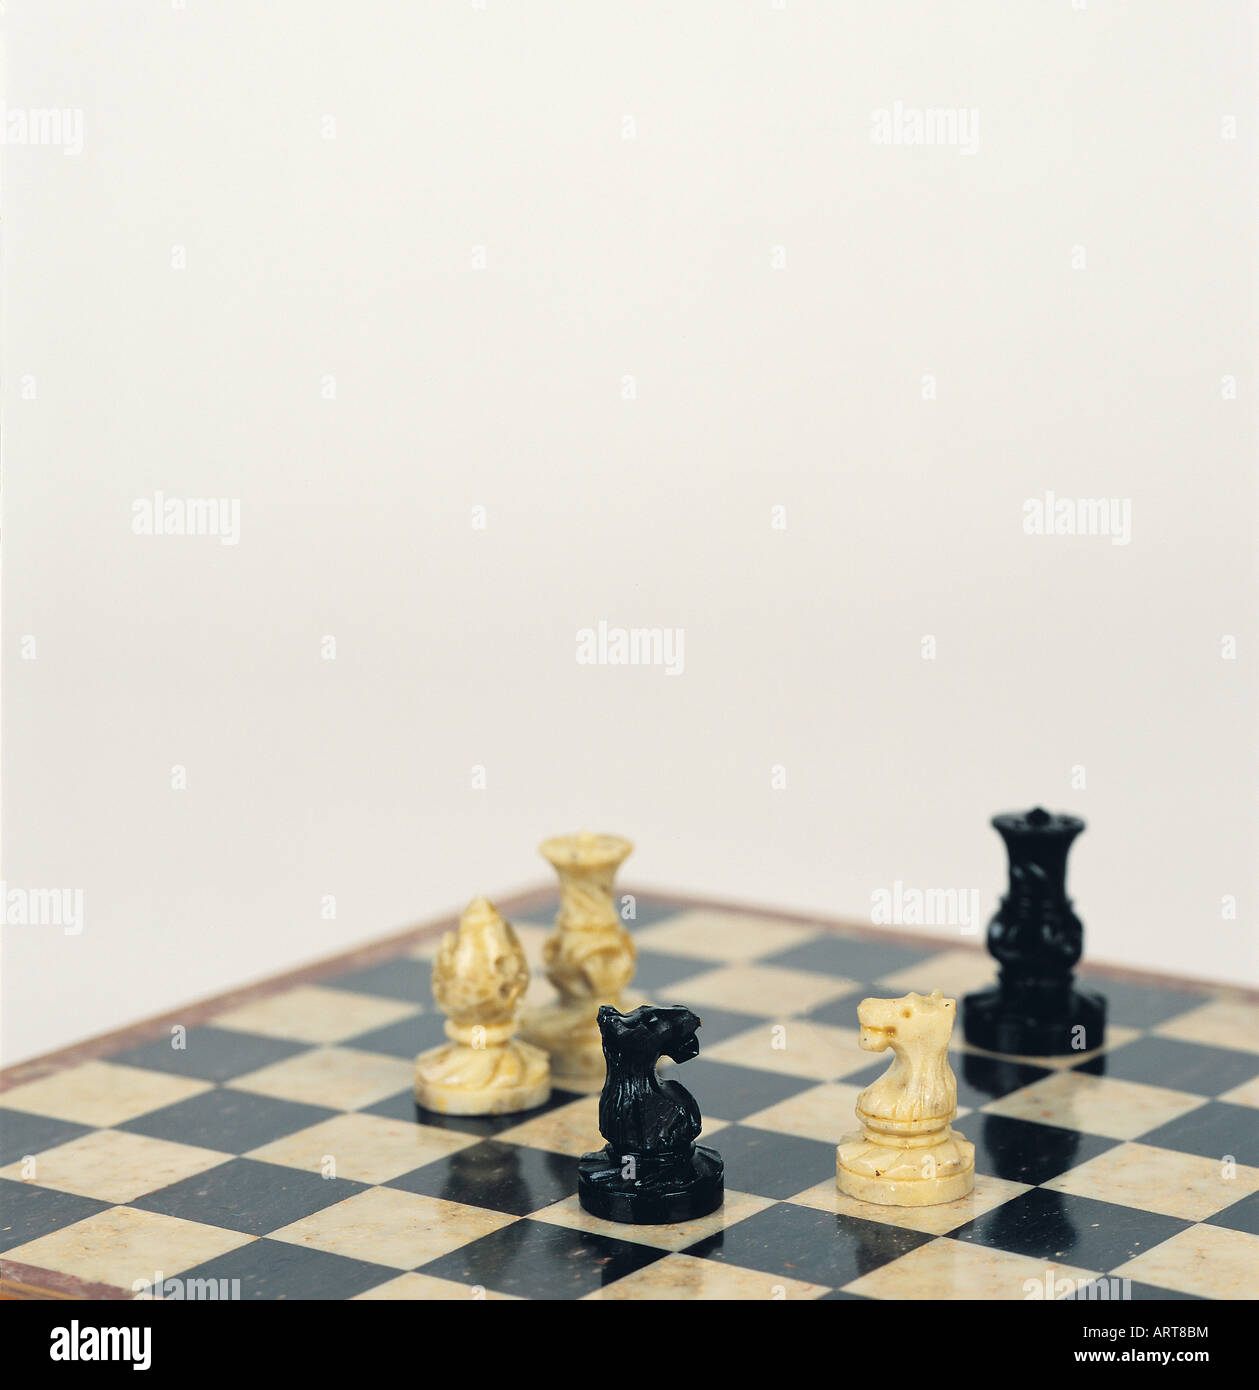 Chess pieces on a chess board - Stock Image